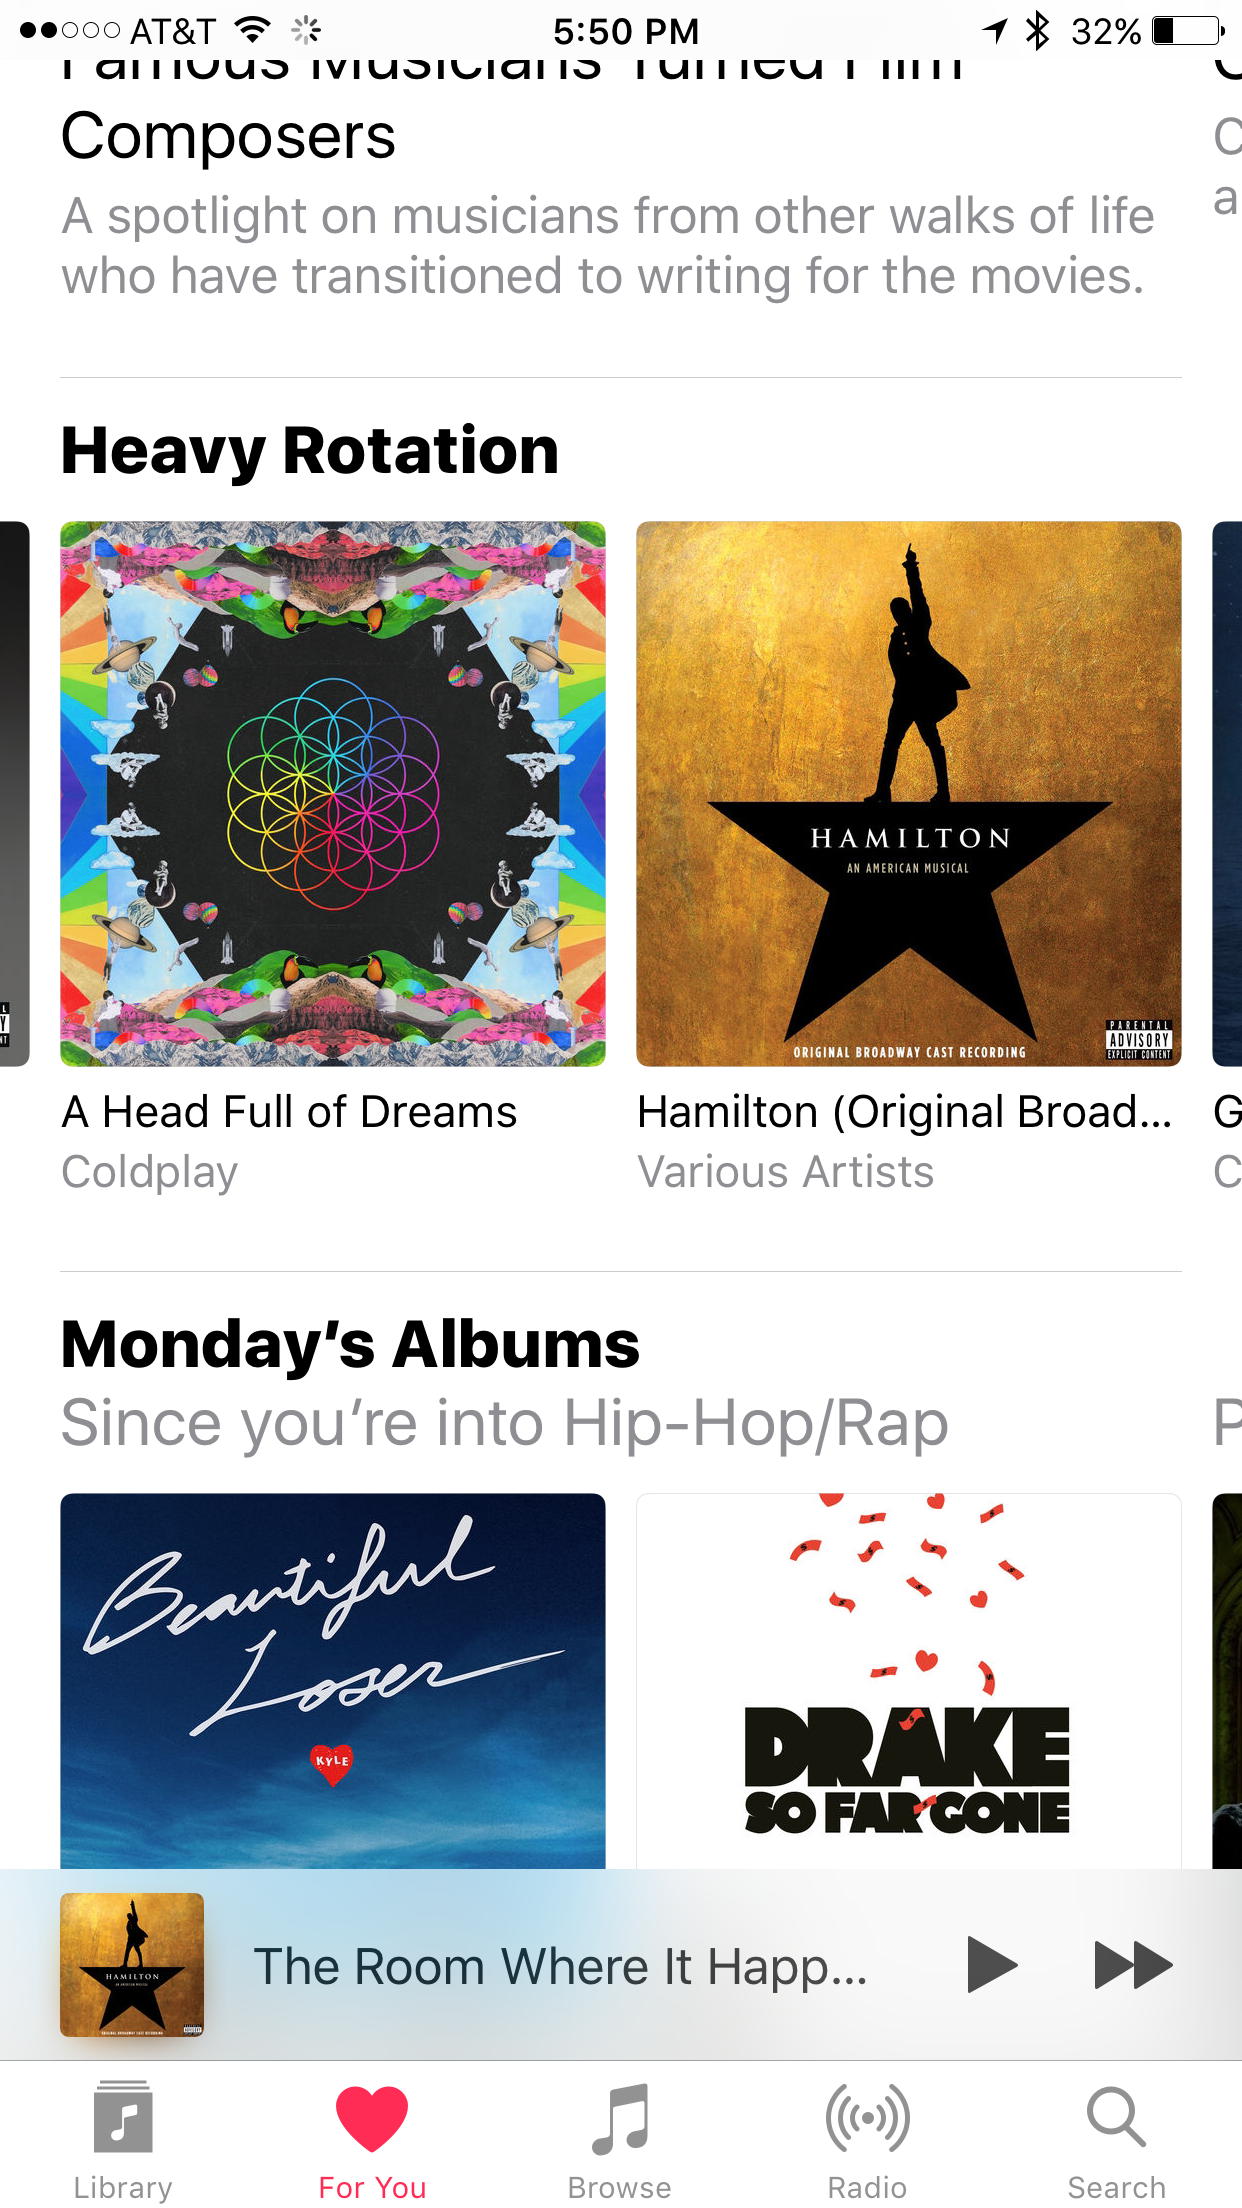 Hands-on: The all-new Music app in iOS 10 [Gallery] - 9to5Mac